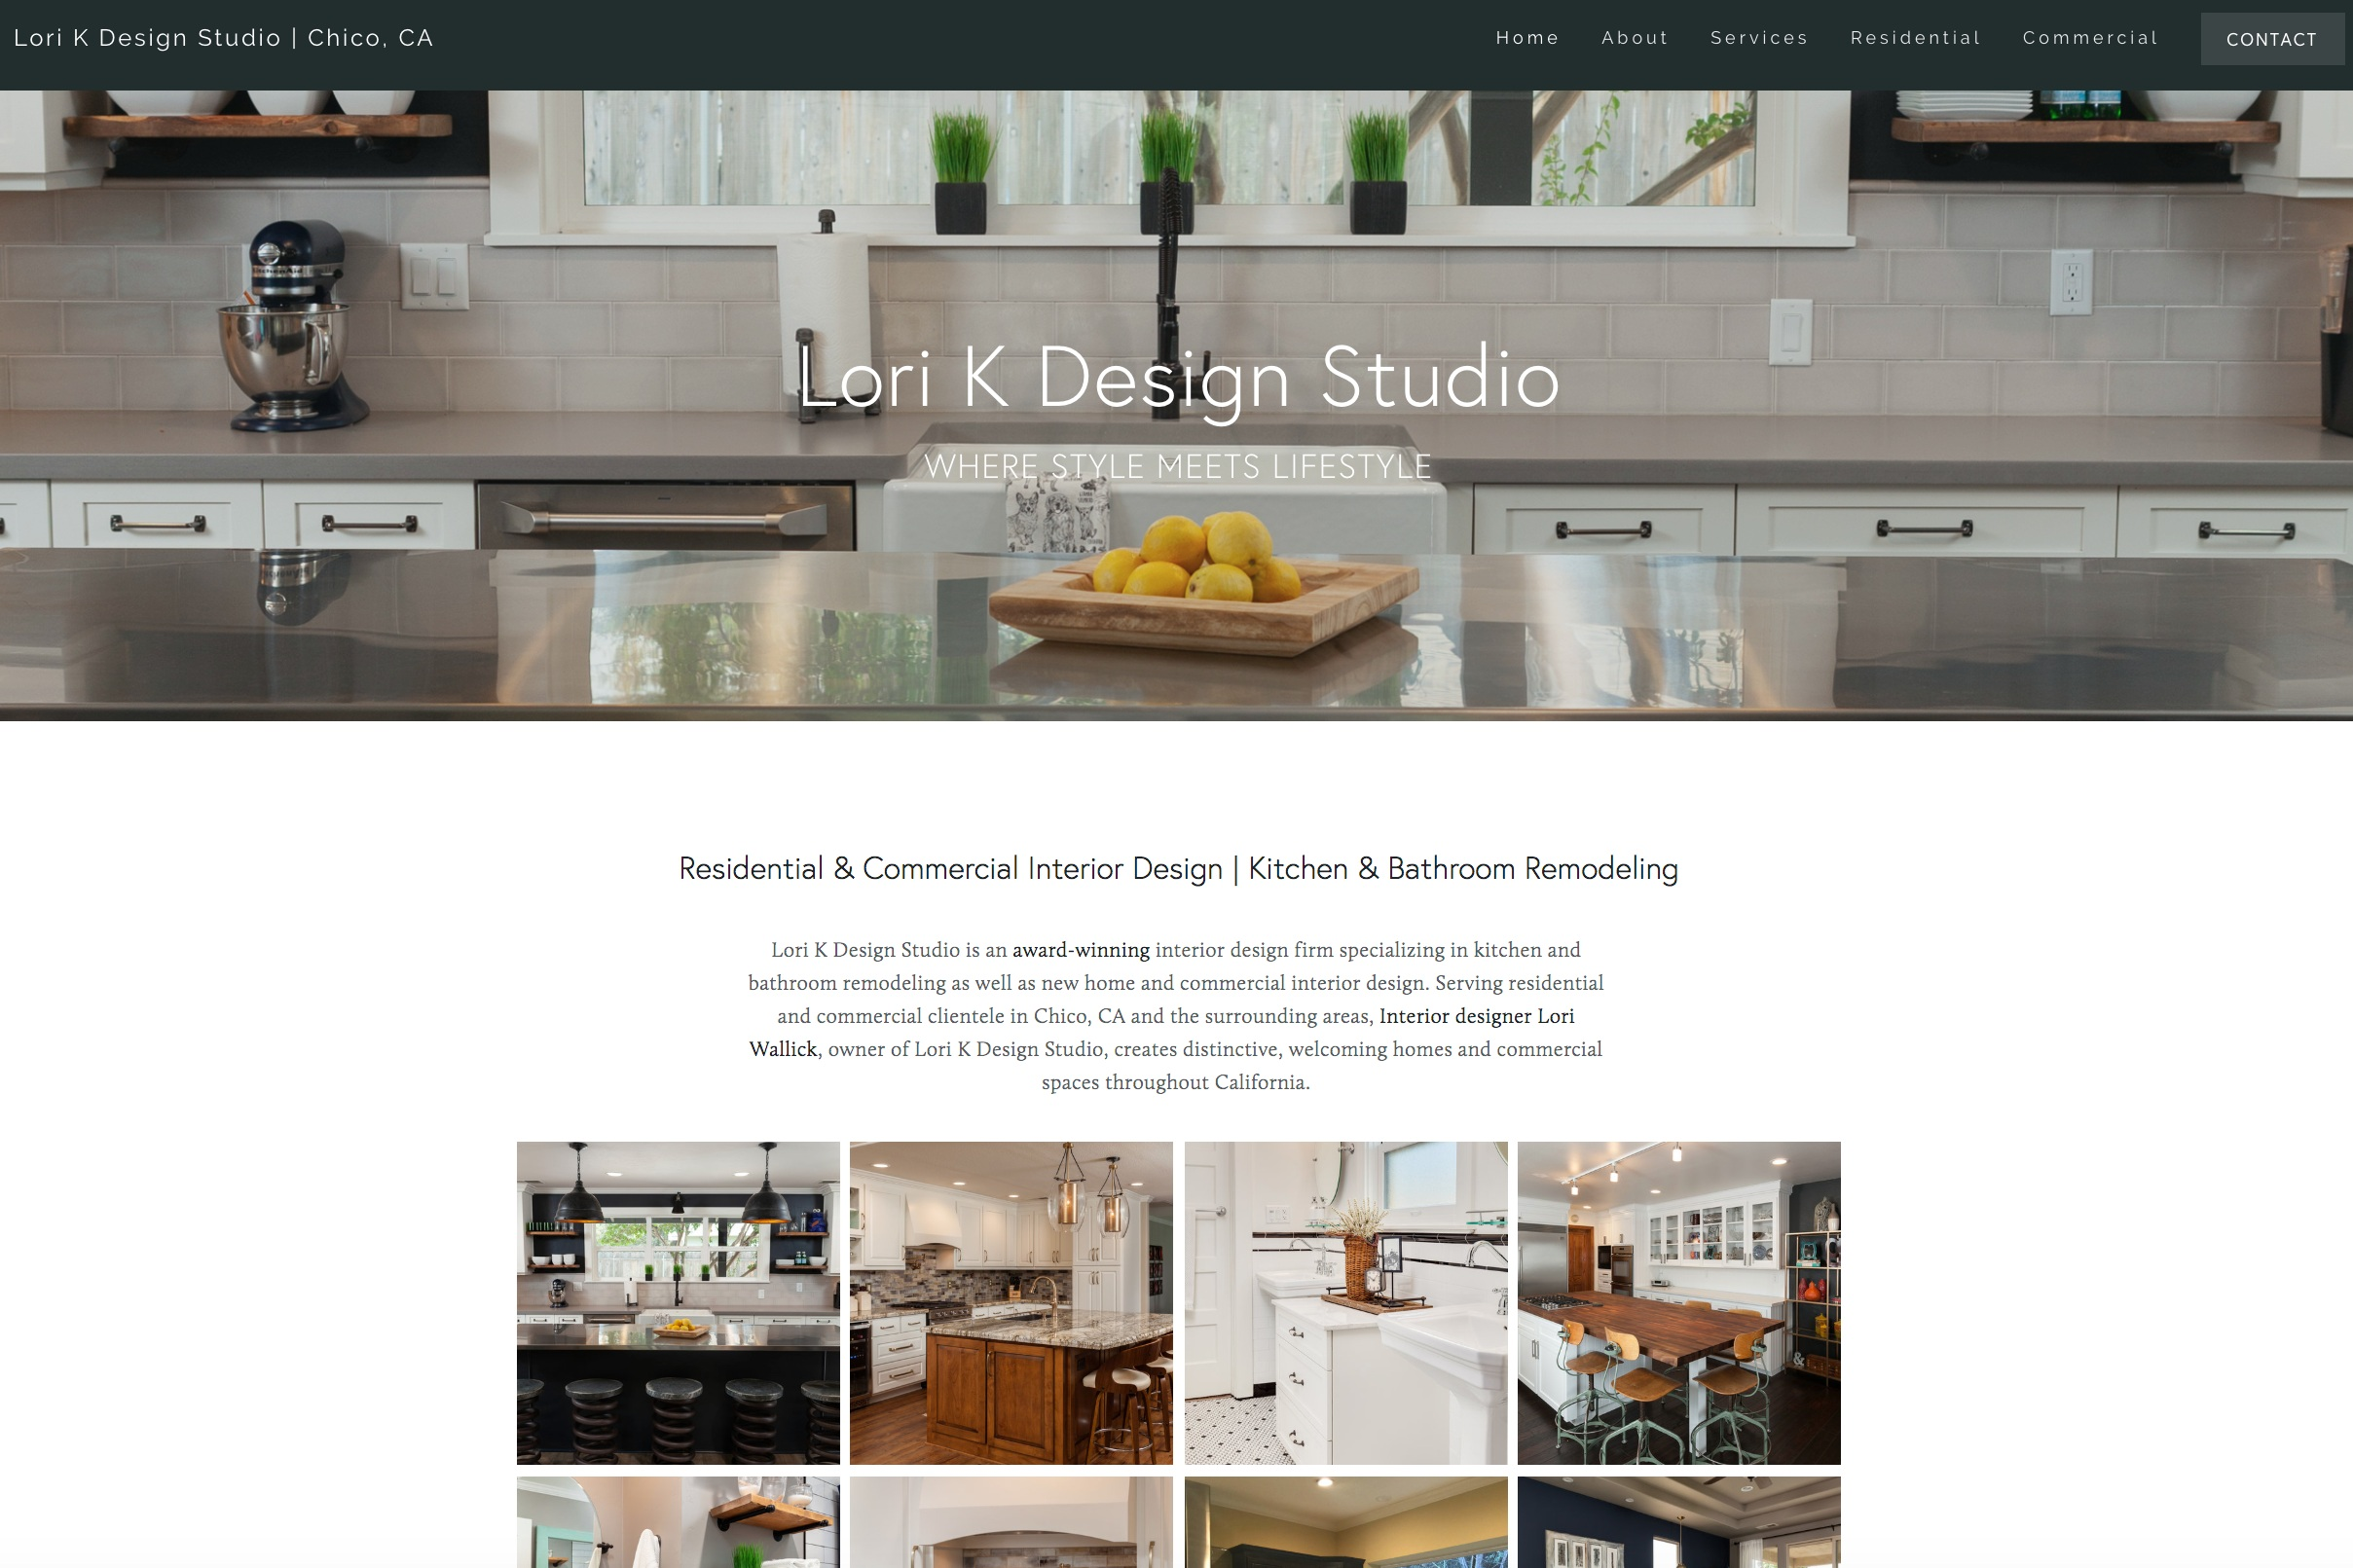 LORI K DESIGN STUDIO | Interior Design Firm Website - Interior design and decorating firm, Lori K Design Studio based in Chico, California, was looking for a solution to showcase their interior design portfolio and establish an online presence. They turned to Little Owl Design Studio to create a website that reflected their style. Branded social media profiles were developed on Facebook, Instagram, Twitter, Pinterest, Houzz, Google Plus, and Yelp then connected to their site. On the Squarespace platform, we provided a photo-rich design, wrote copy, and implemented on-page SEO.